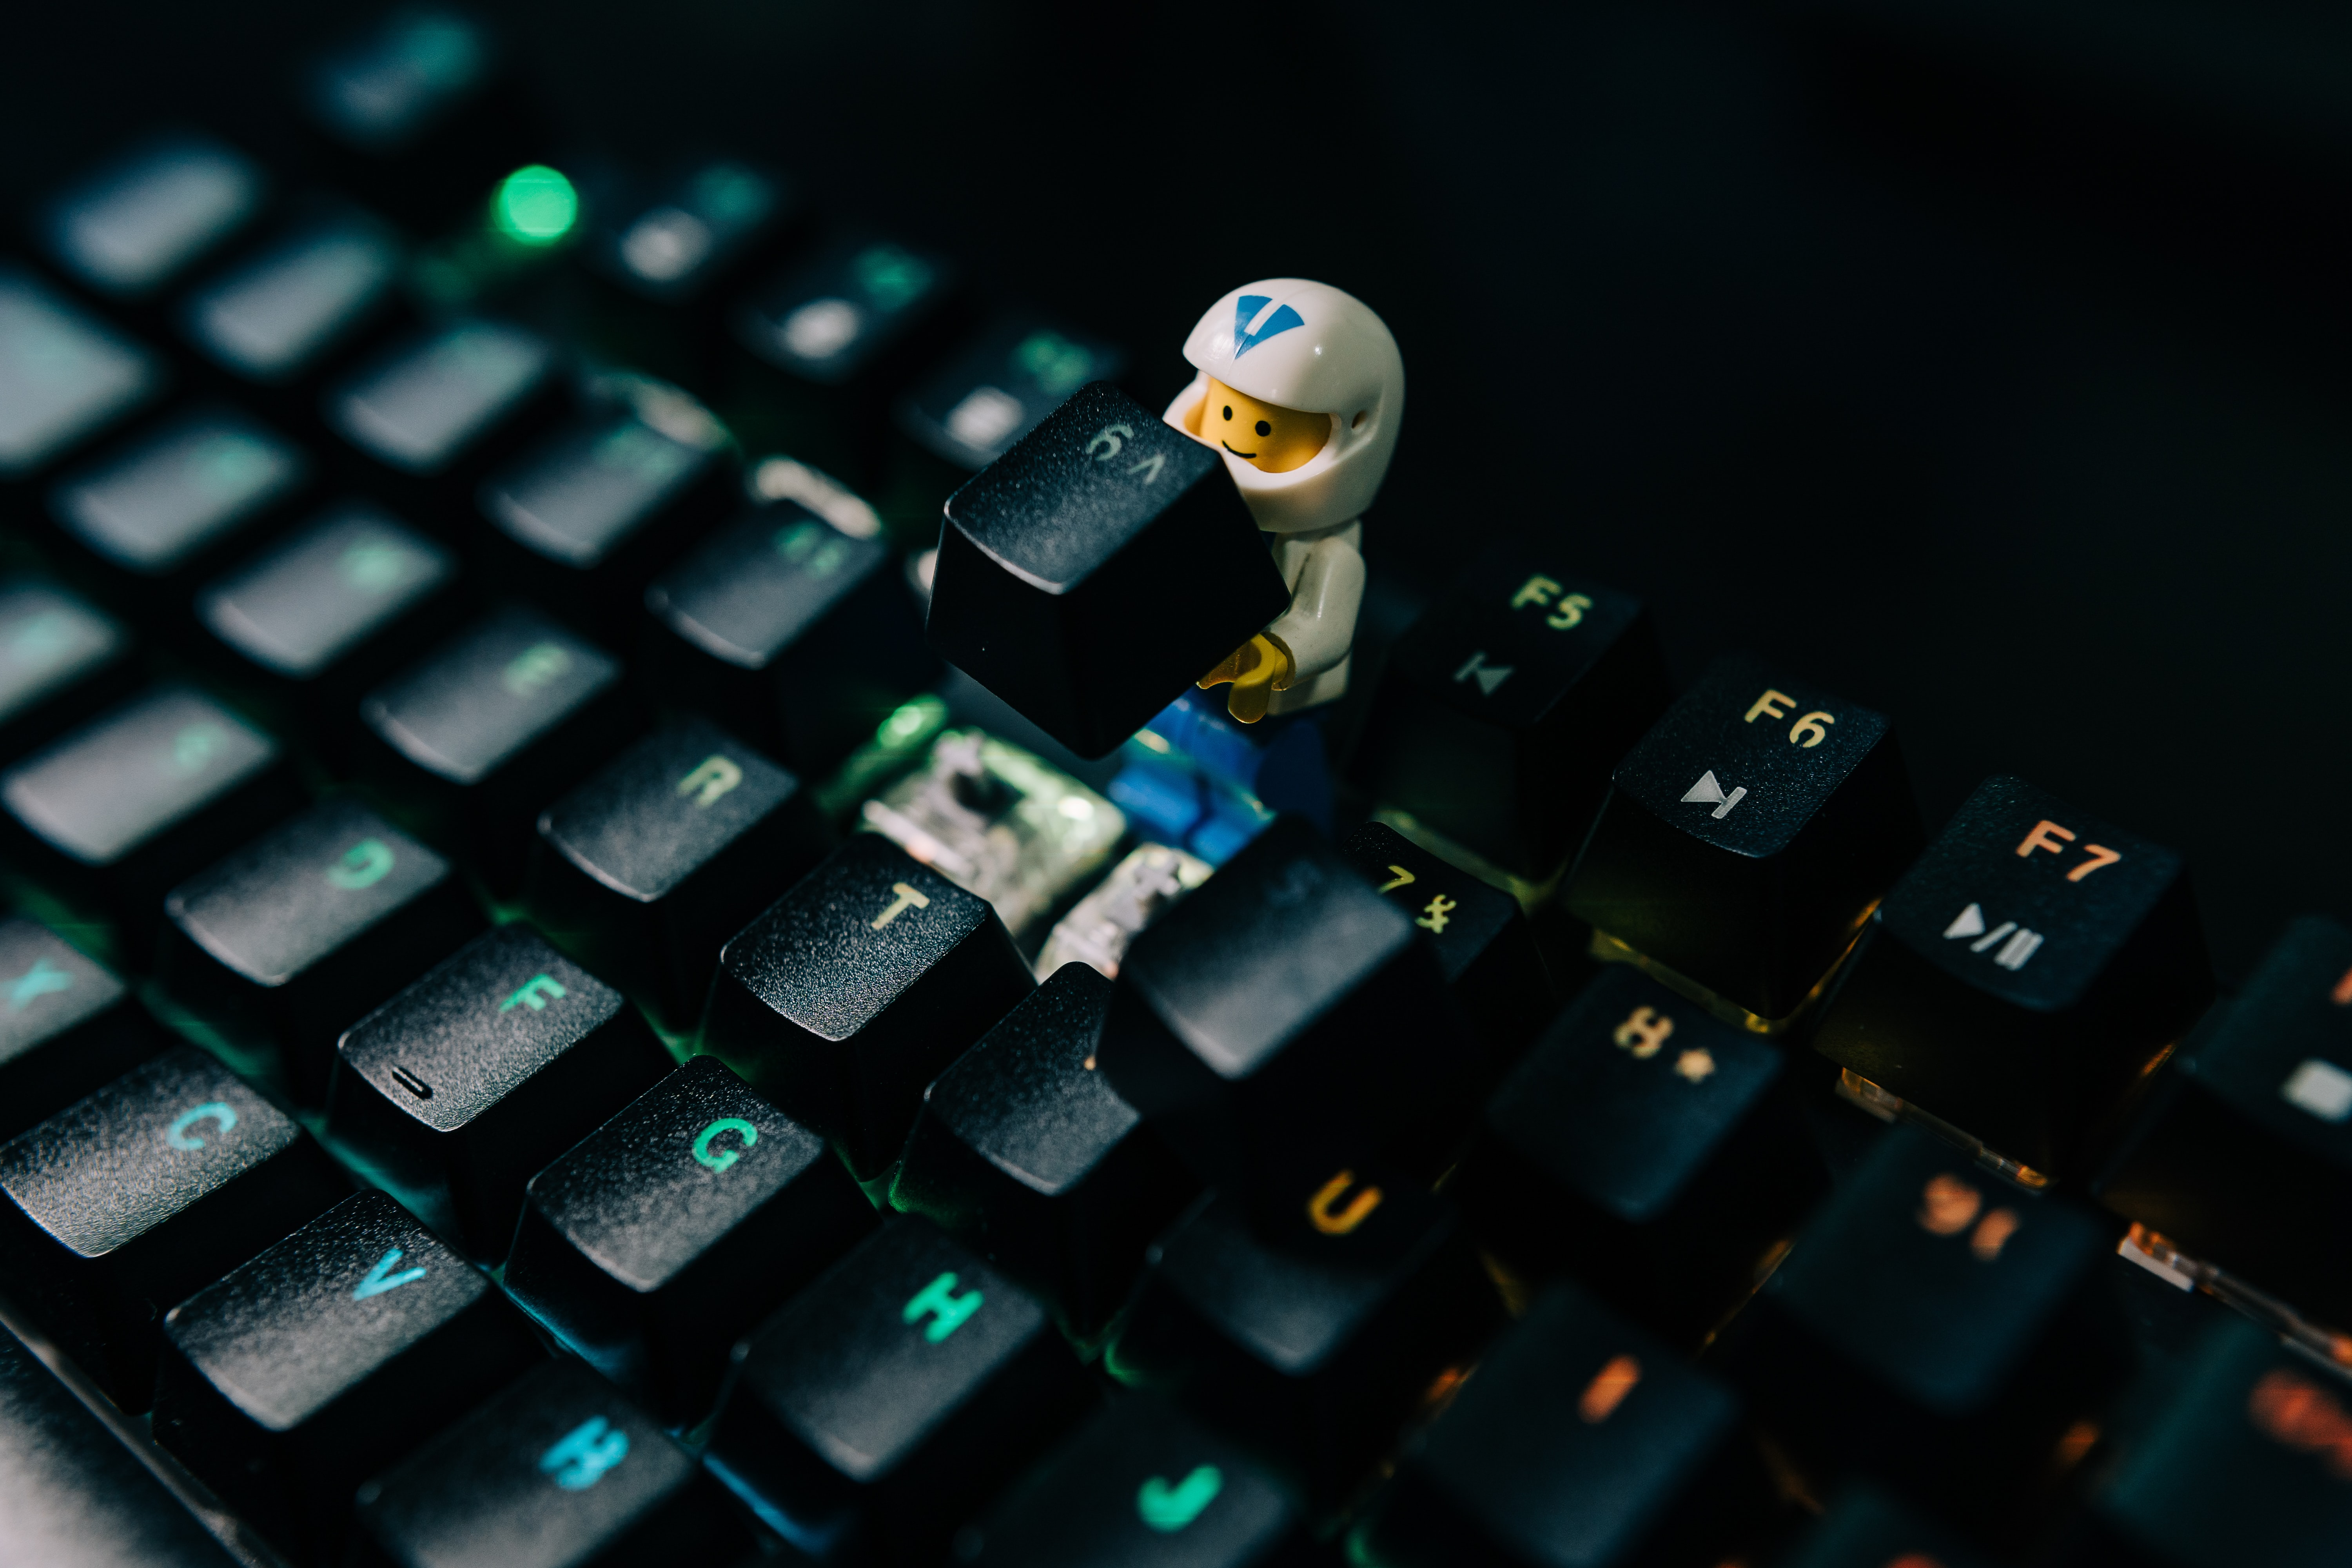 Mechanical Keyboard Pictures Download Free Images On Unsplash